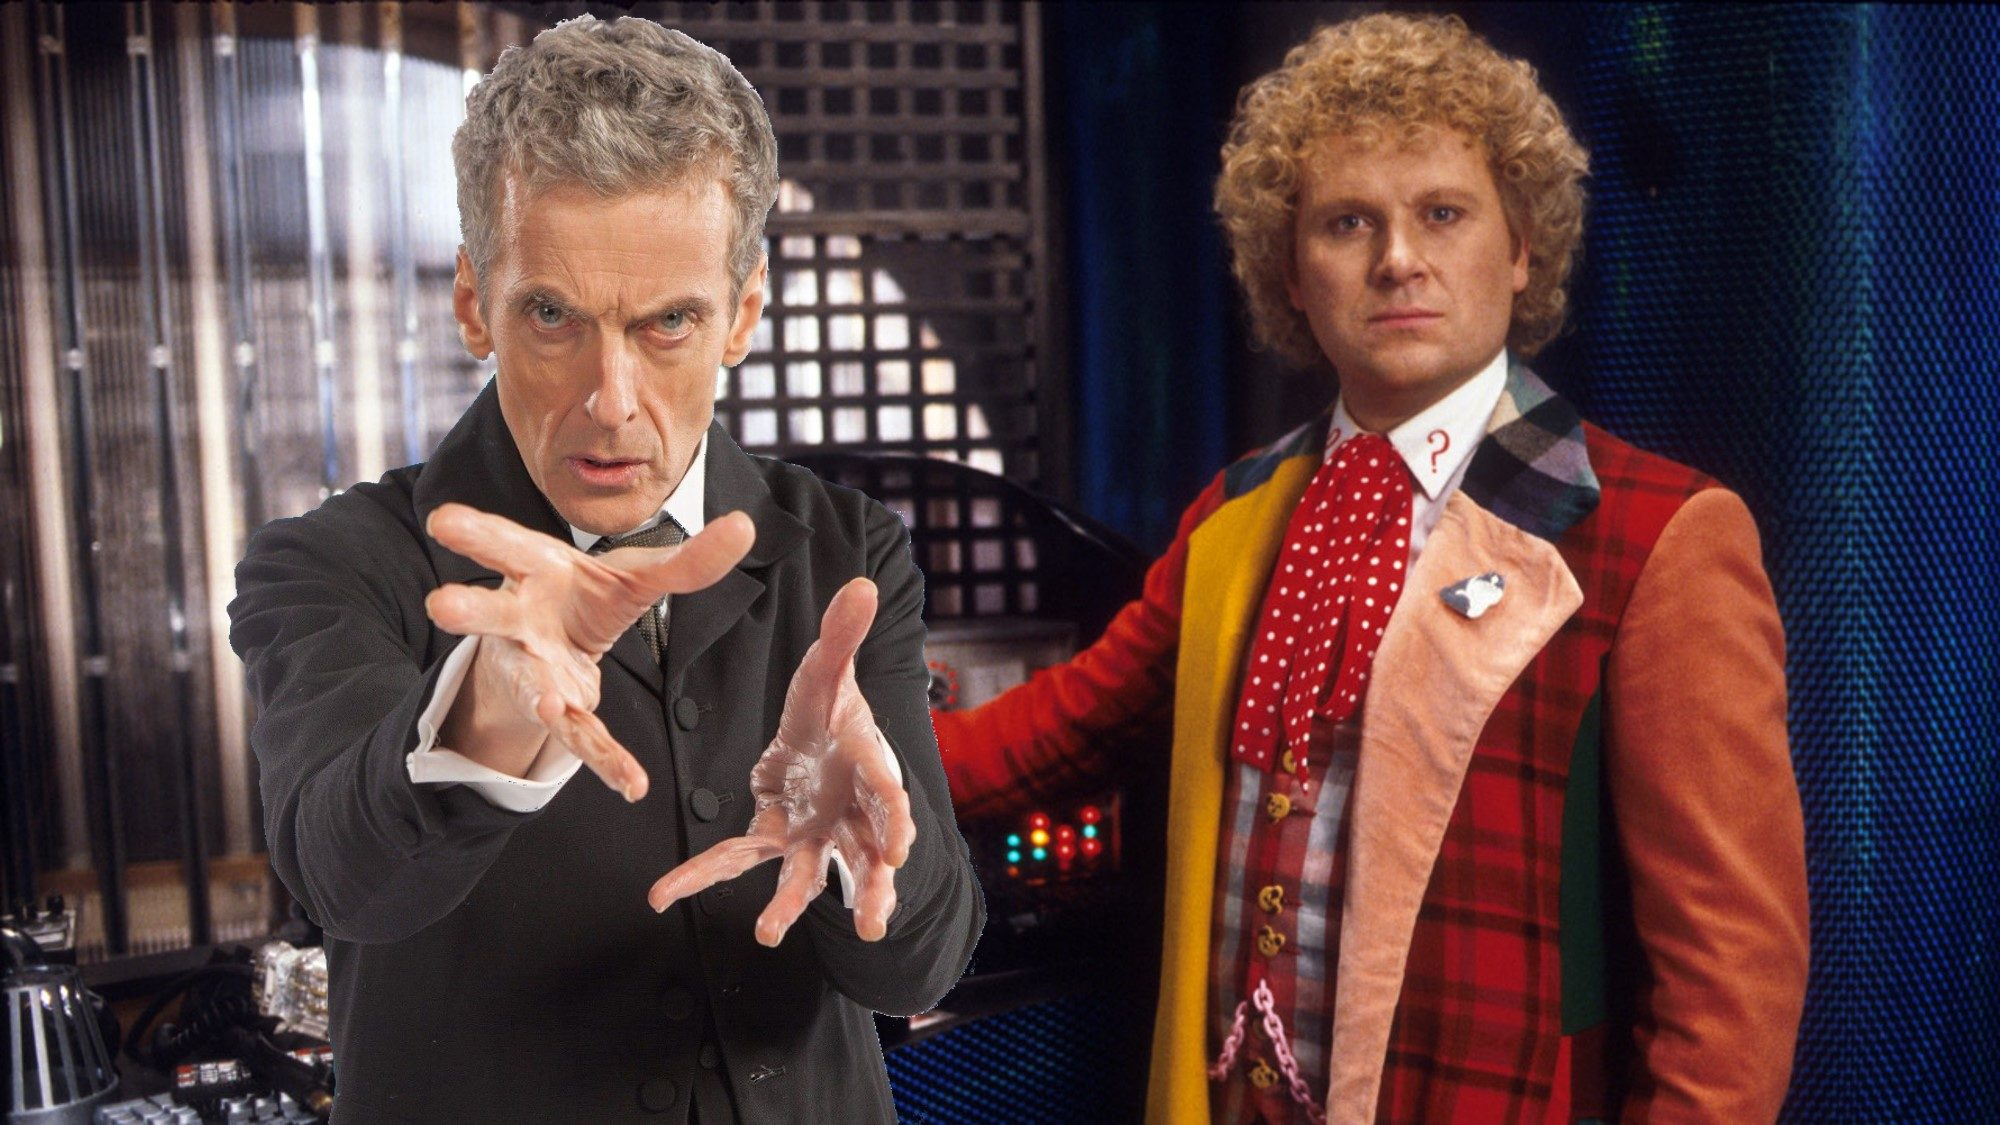 12th-6th-Peter-Capaldi-Colin-Baker-Sixth-Twelfth-2000x1125